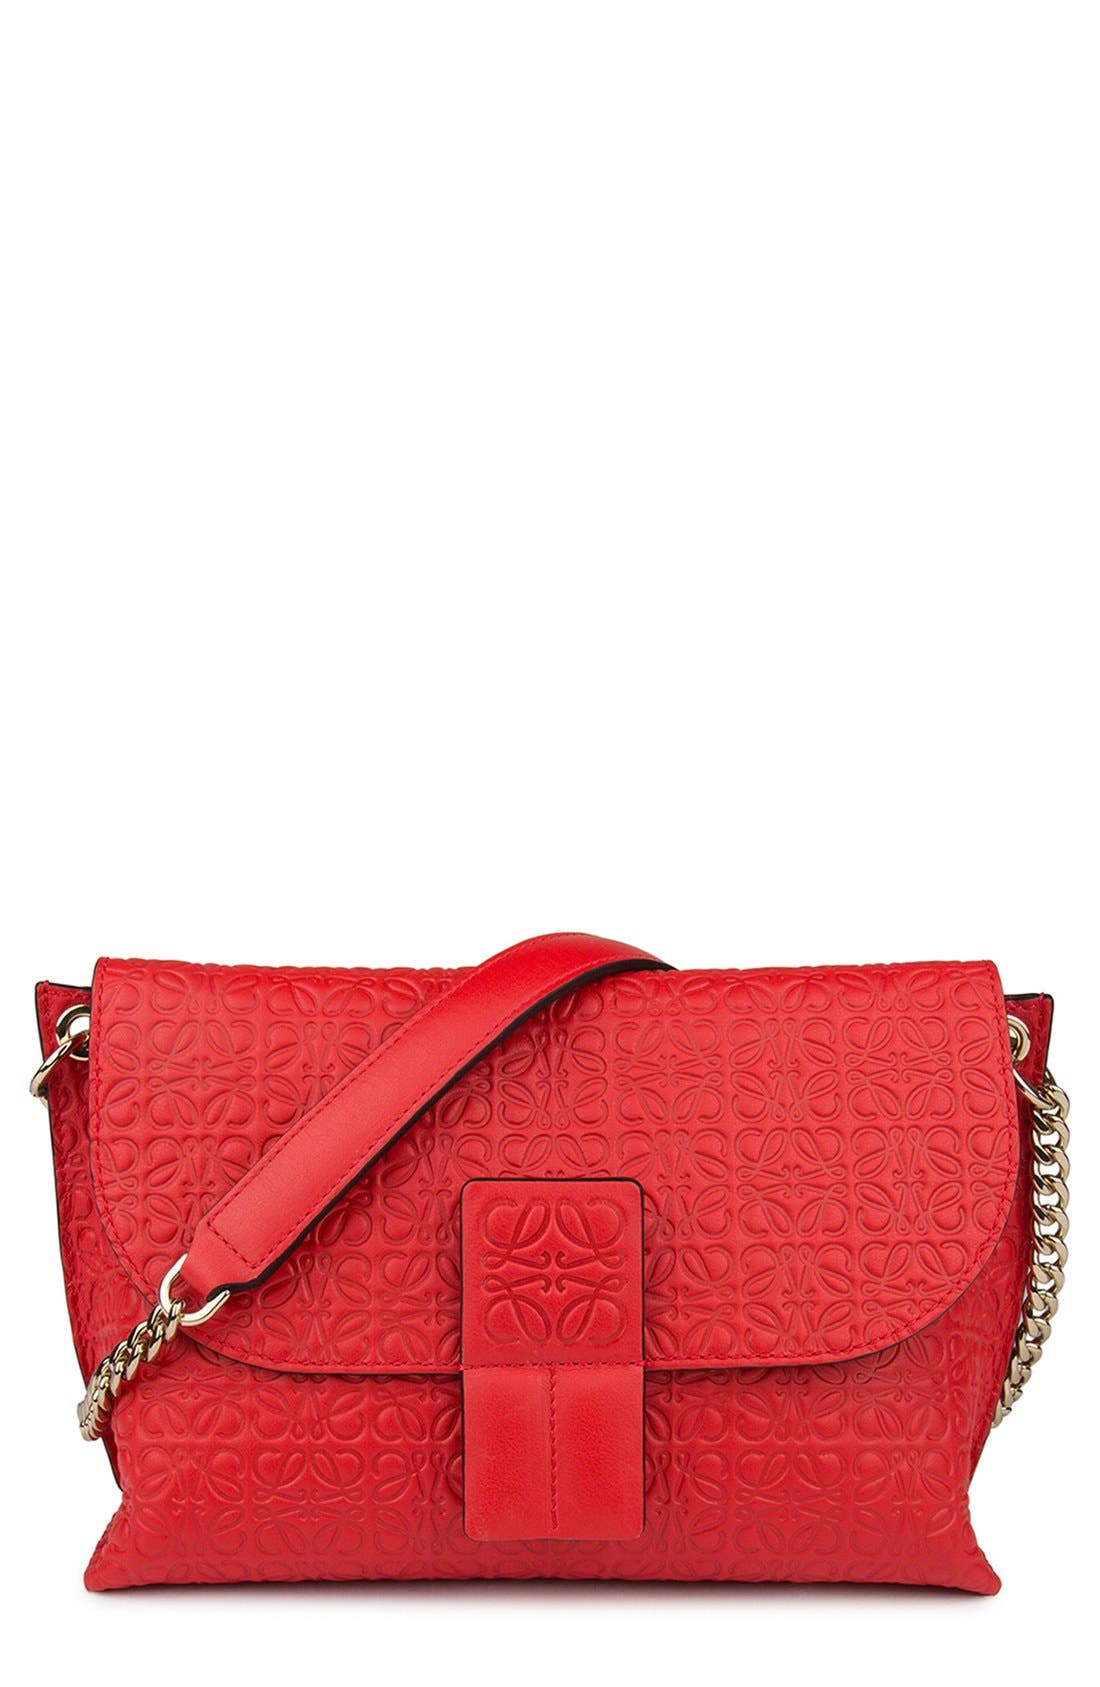 LOEWE 'Avenue' Embossed Calfskin Leather Crossbody Bag